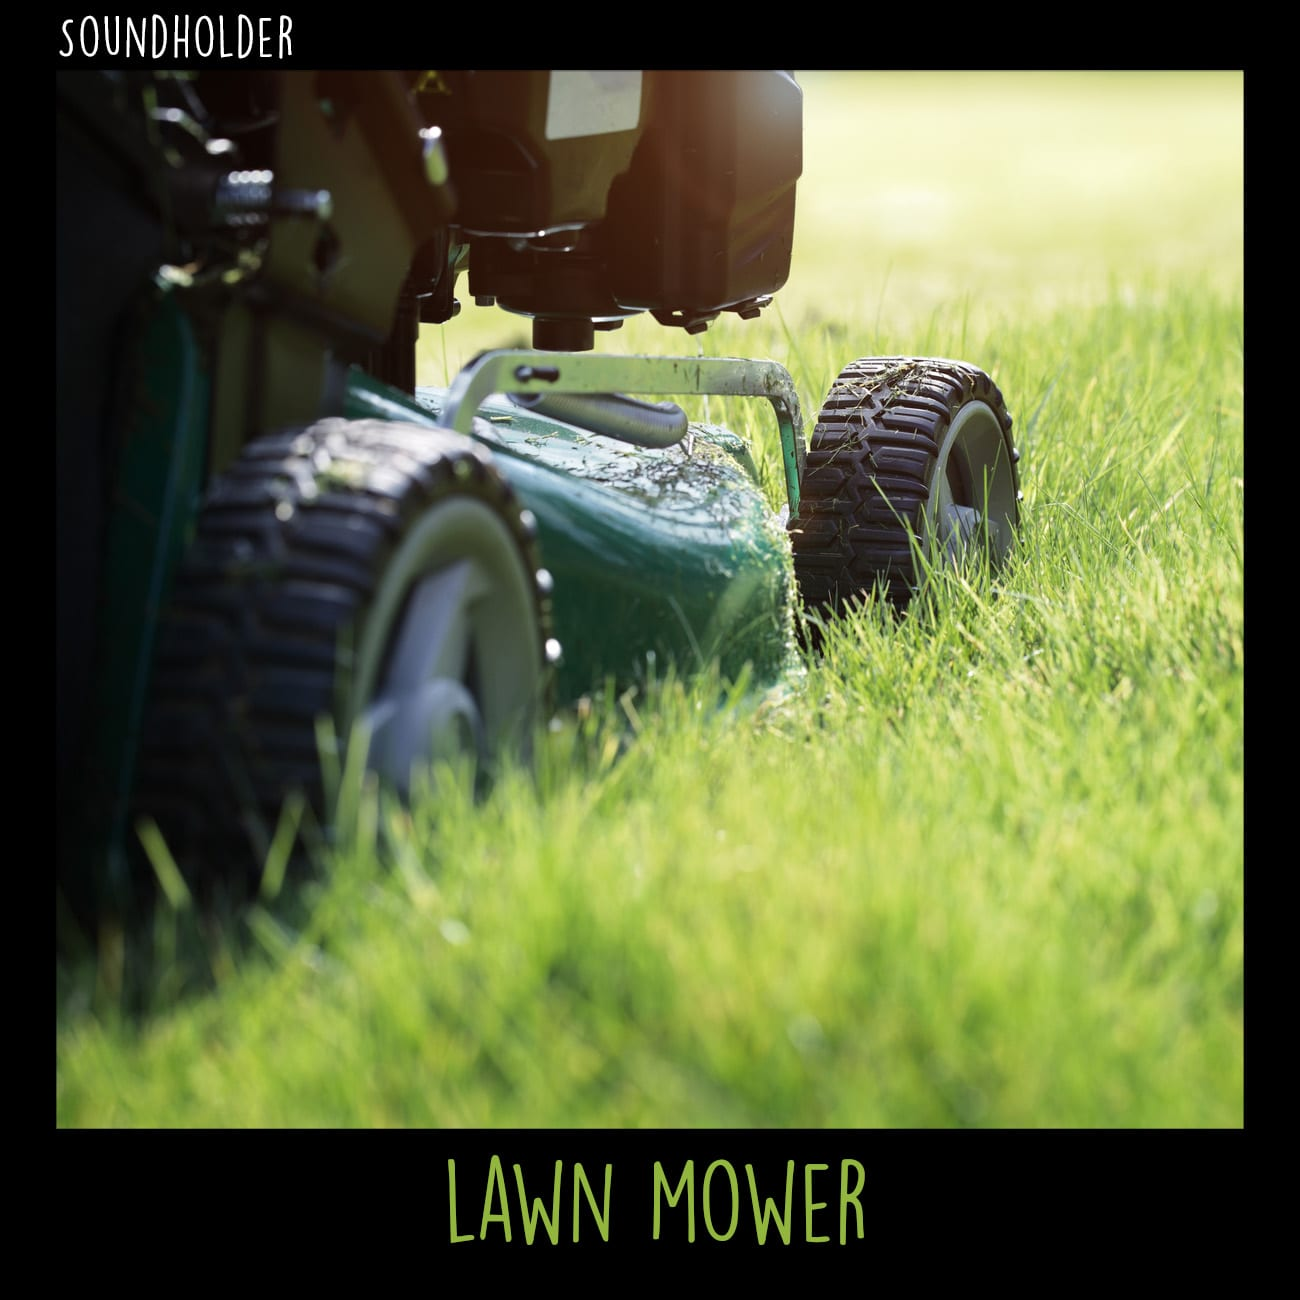 LawnMower_CoverASFX